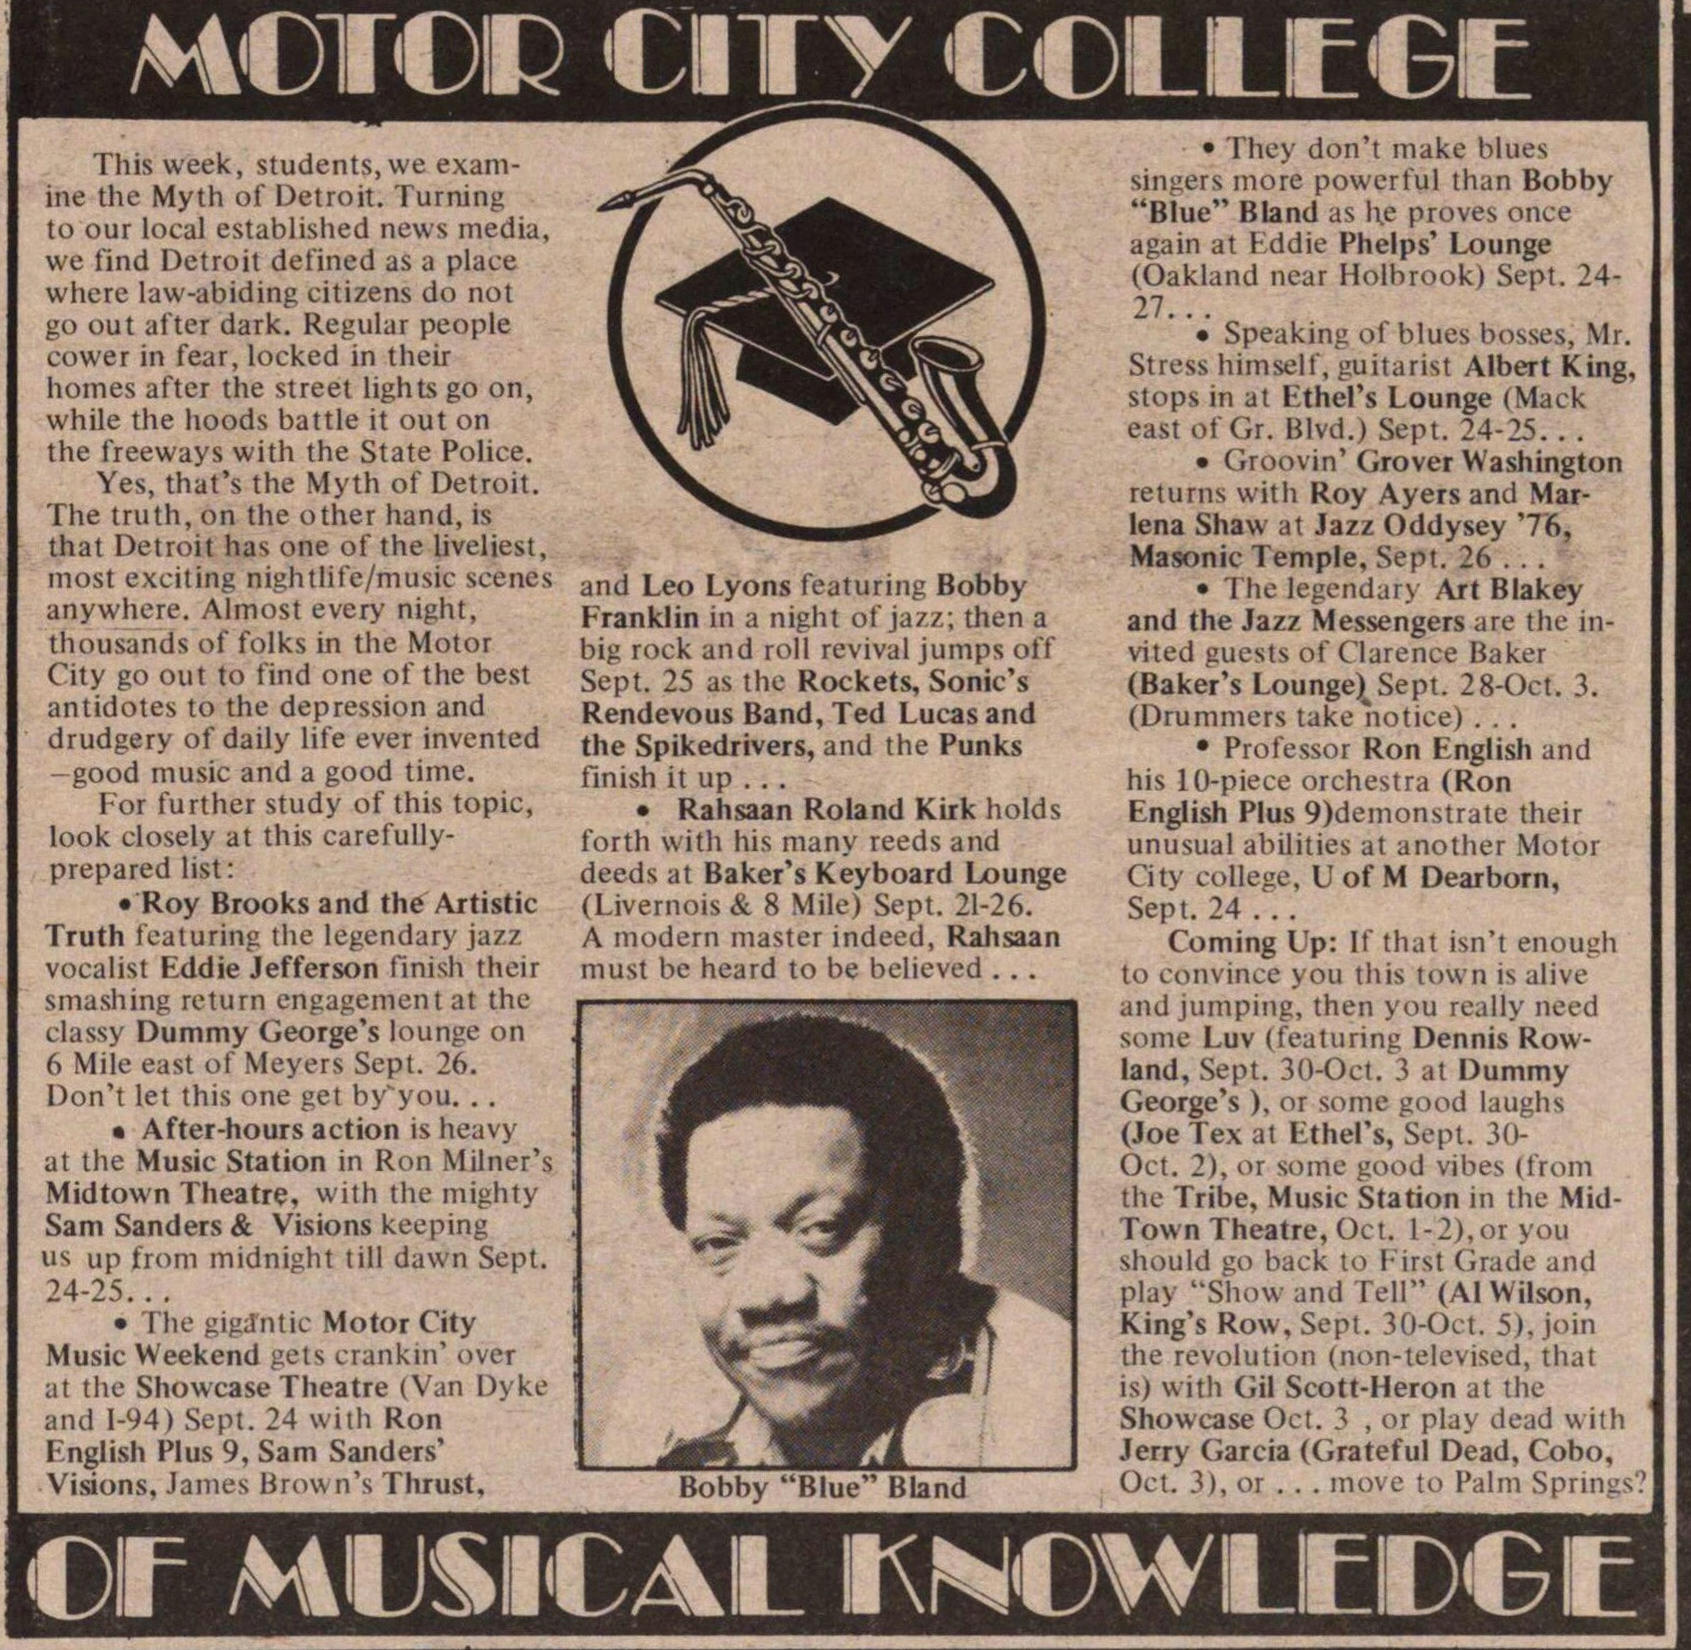 Motor City College Of Musical Knowledge image